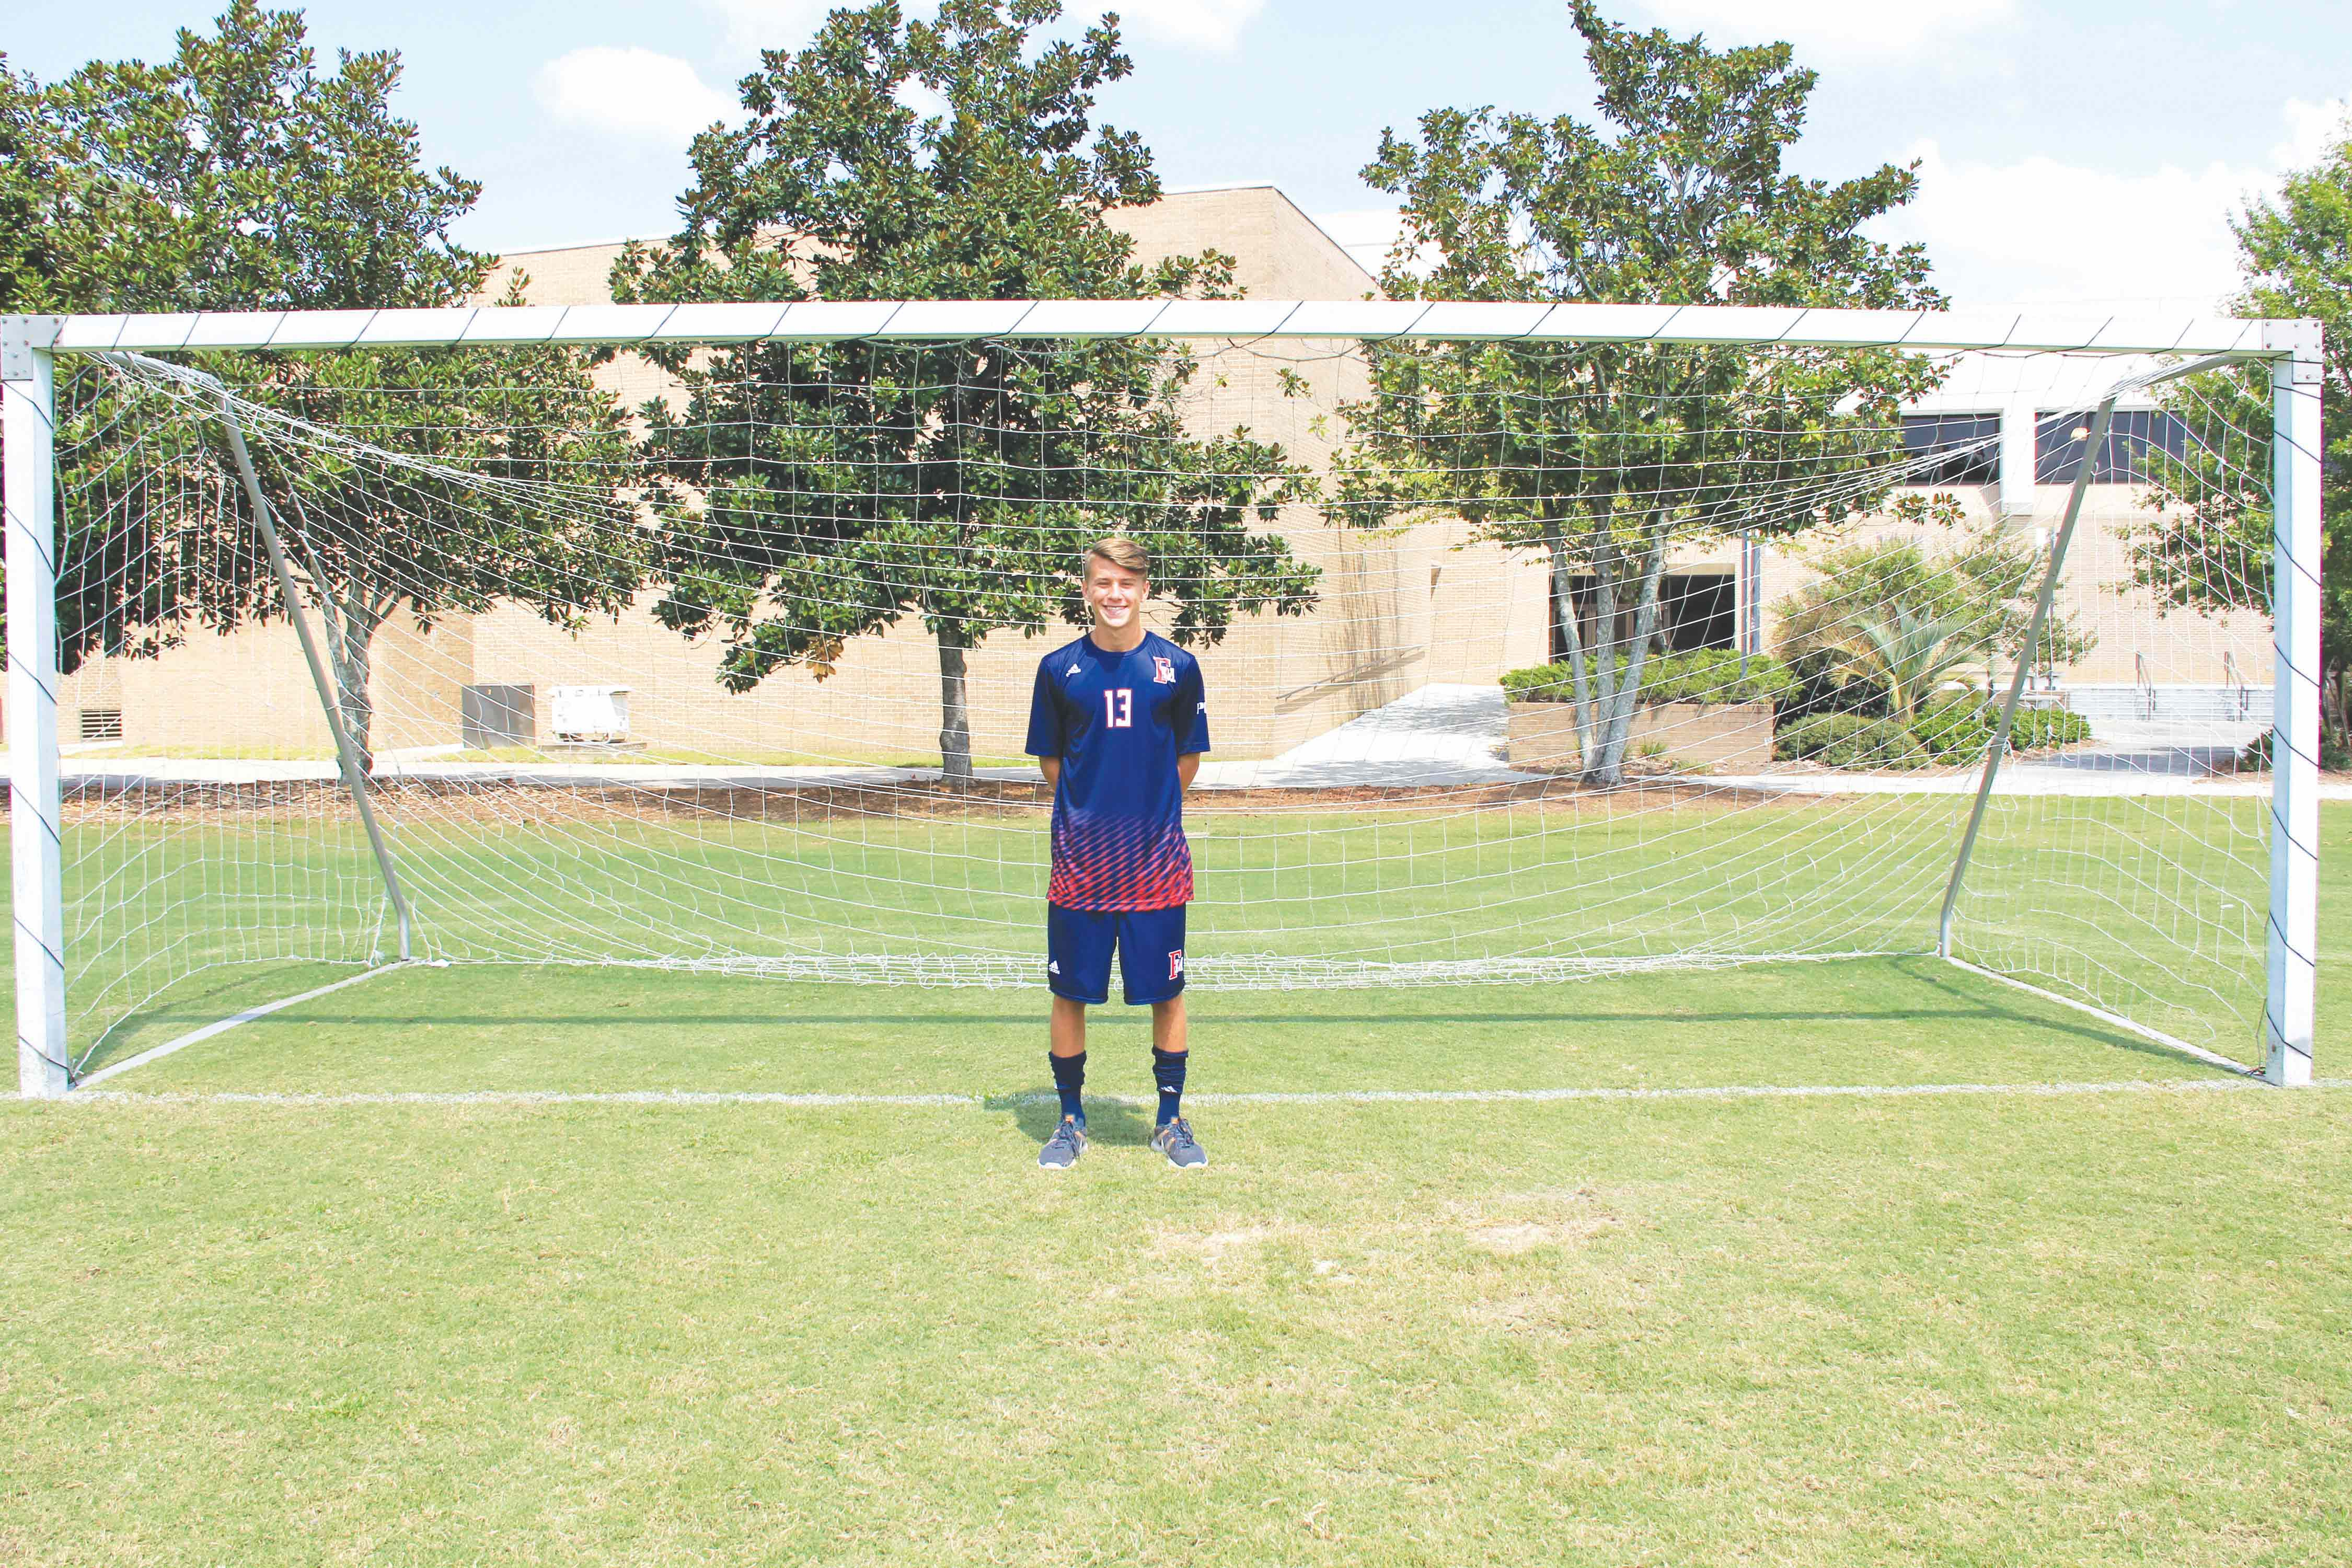 Freshman soccer player Austin Lee is a licensed coach through the U.S. Soccer Federation and teaches children soccer.